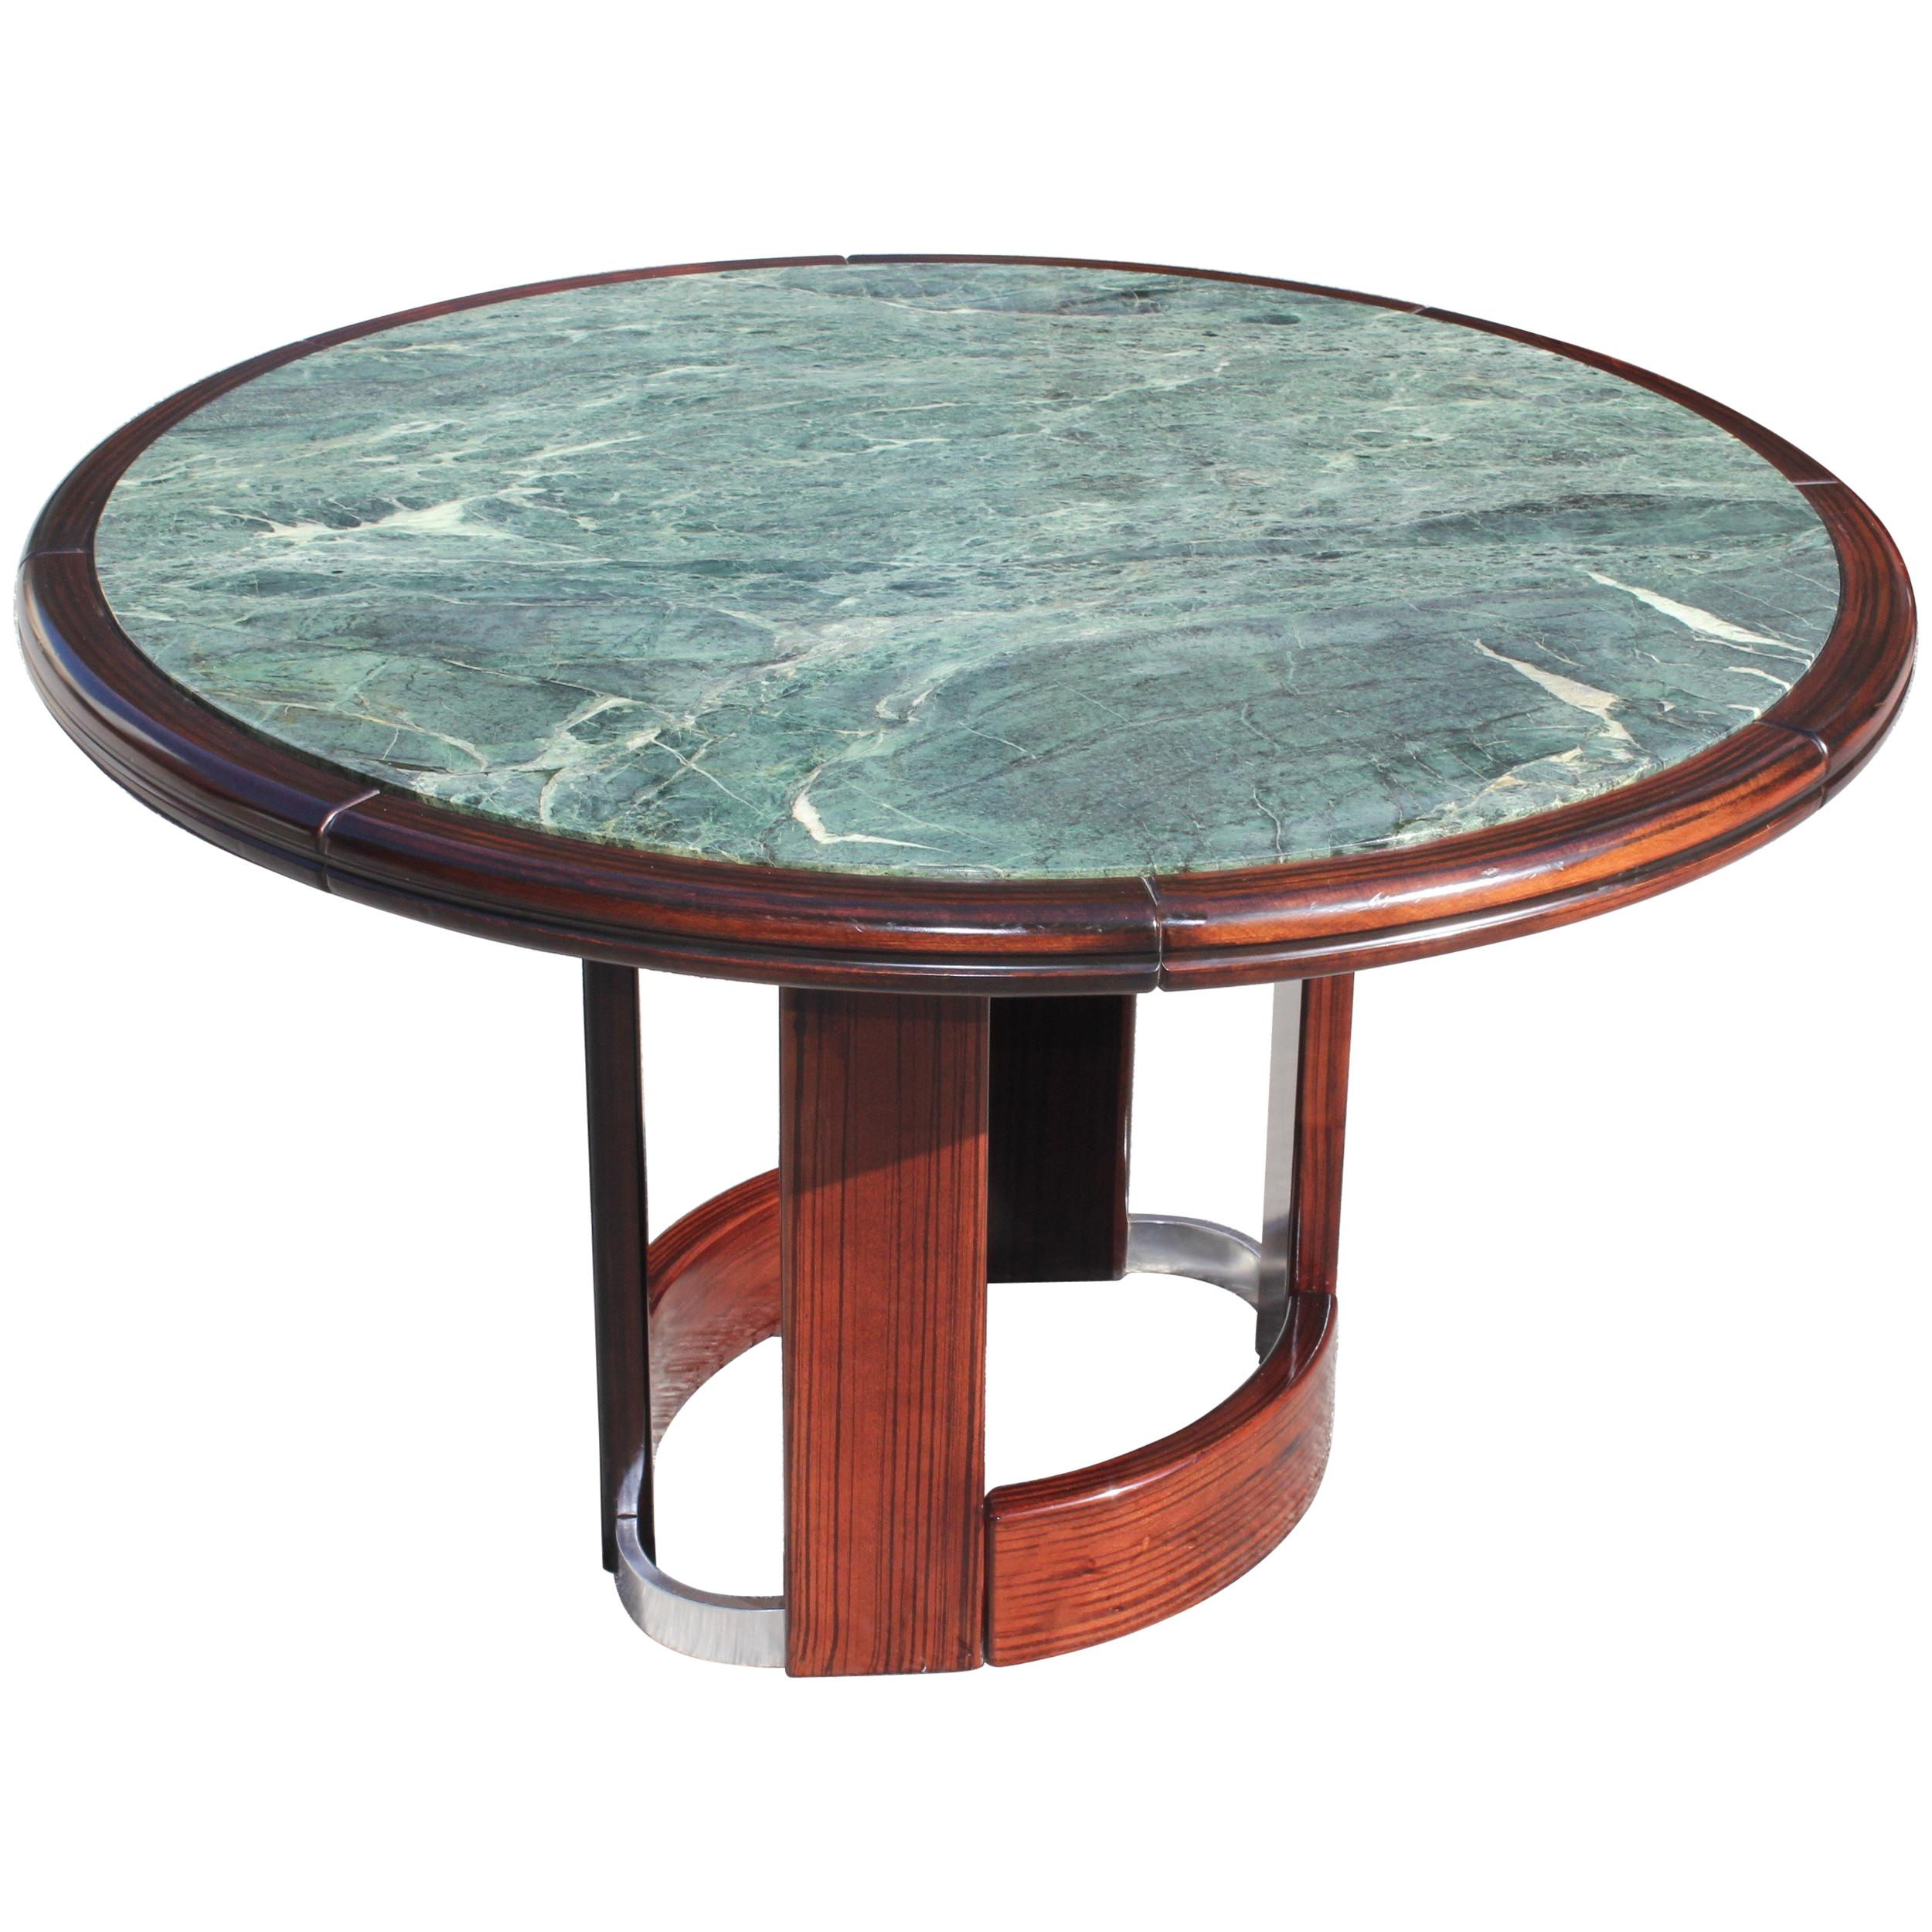 A White Carrara Marble Round Table at 1stdibs